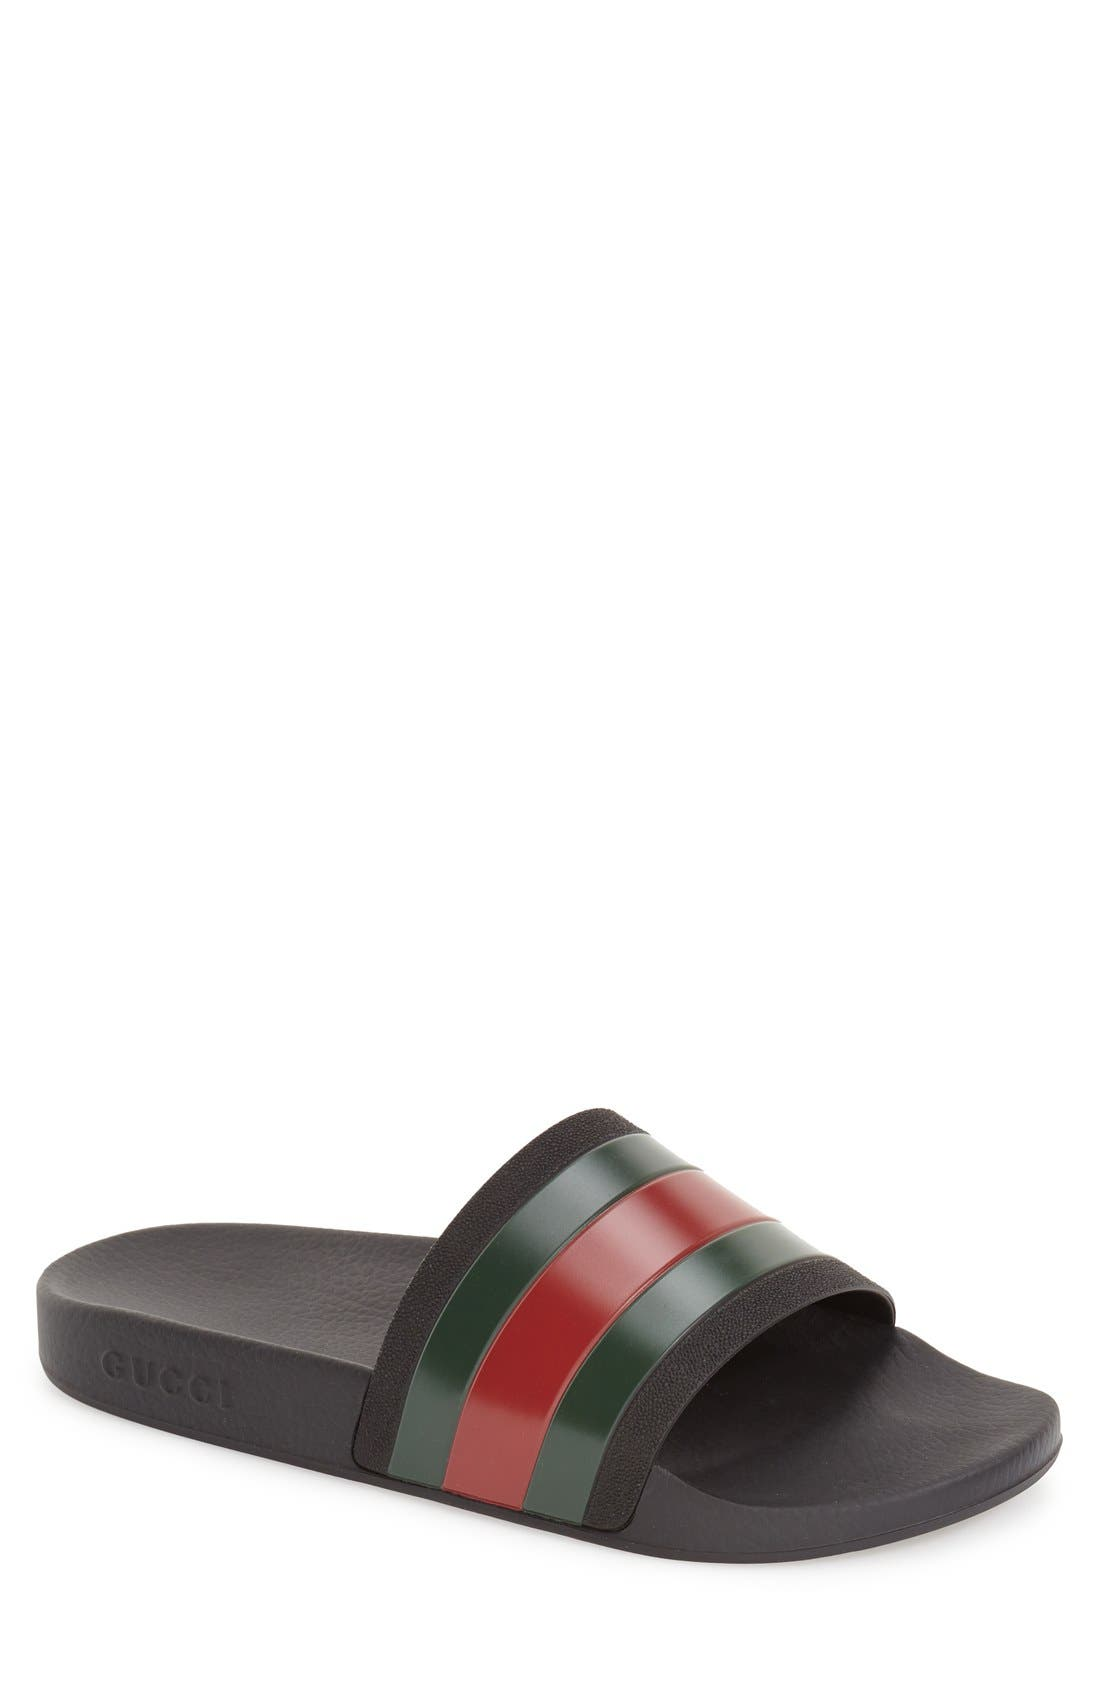 Main Image - Gucci 'Pursuit '72 Slide' Sandal (Men)